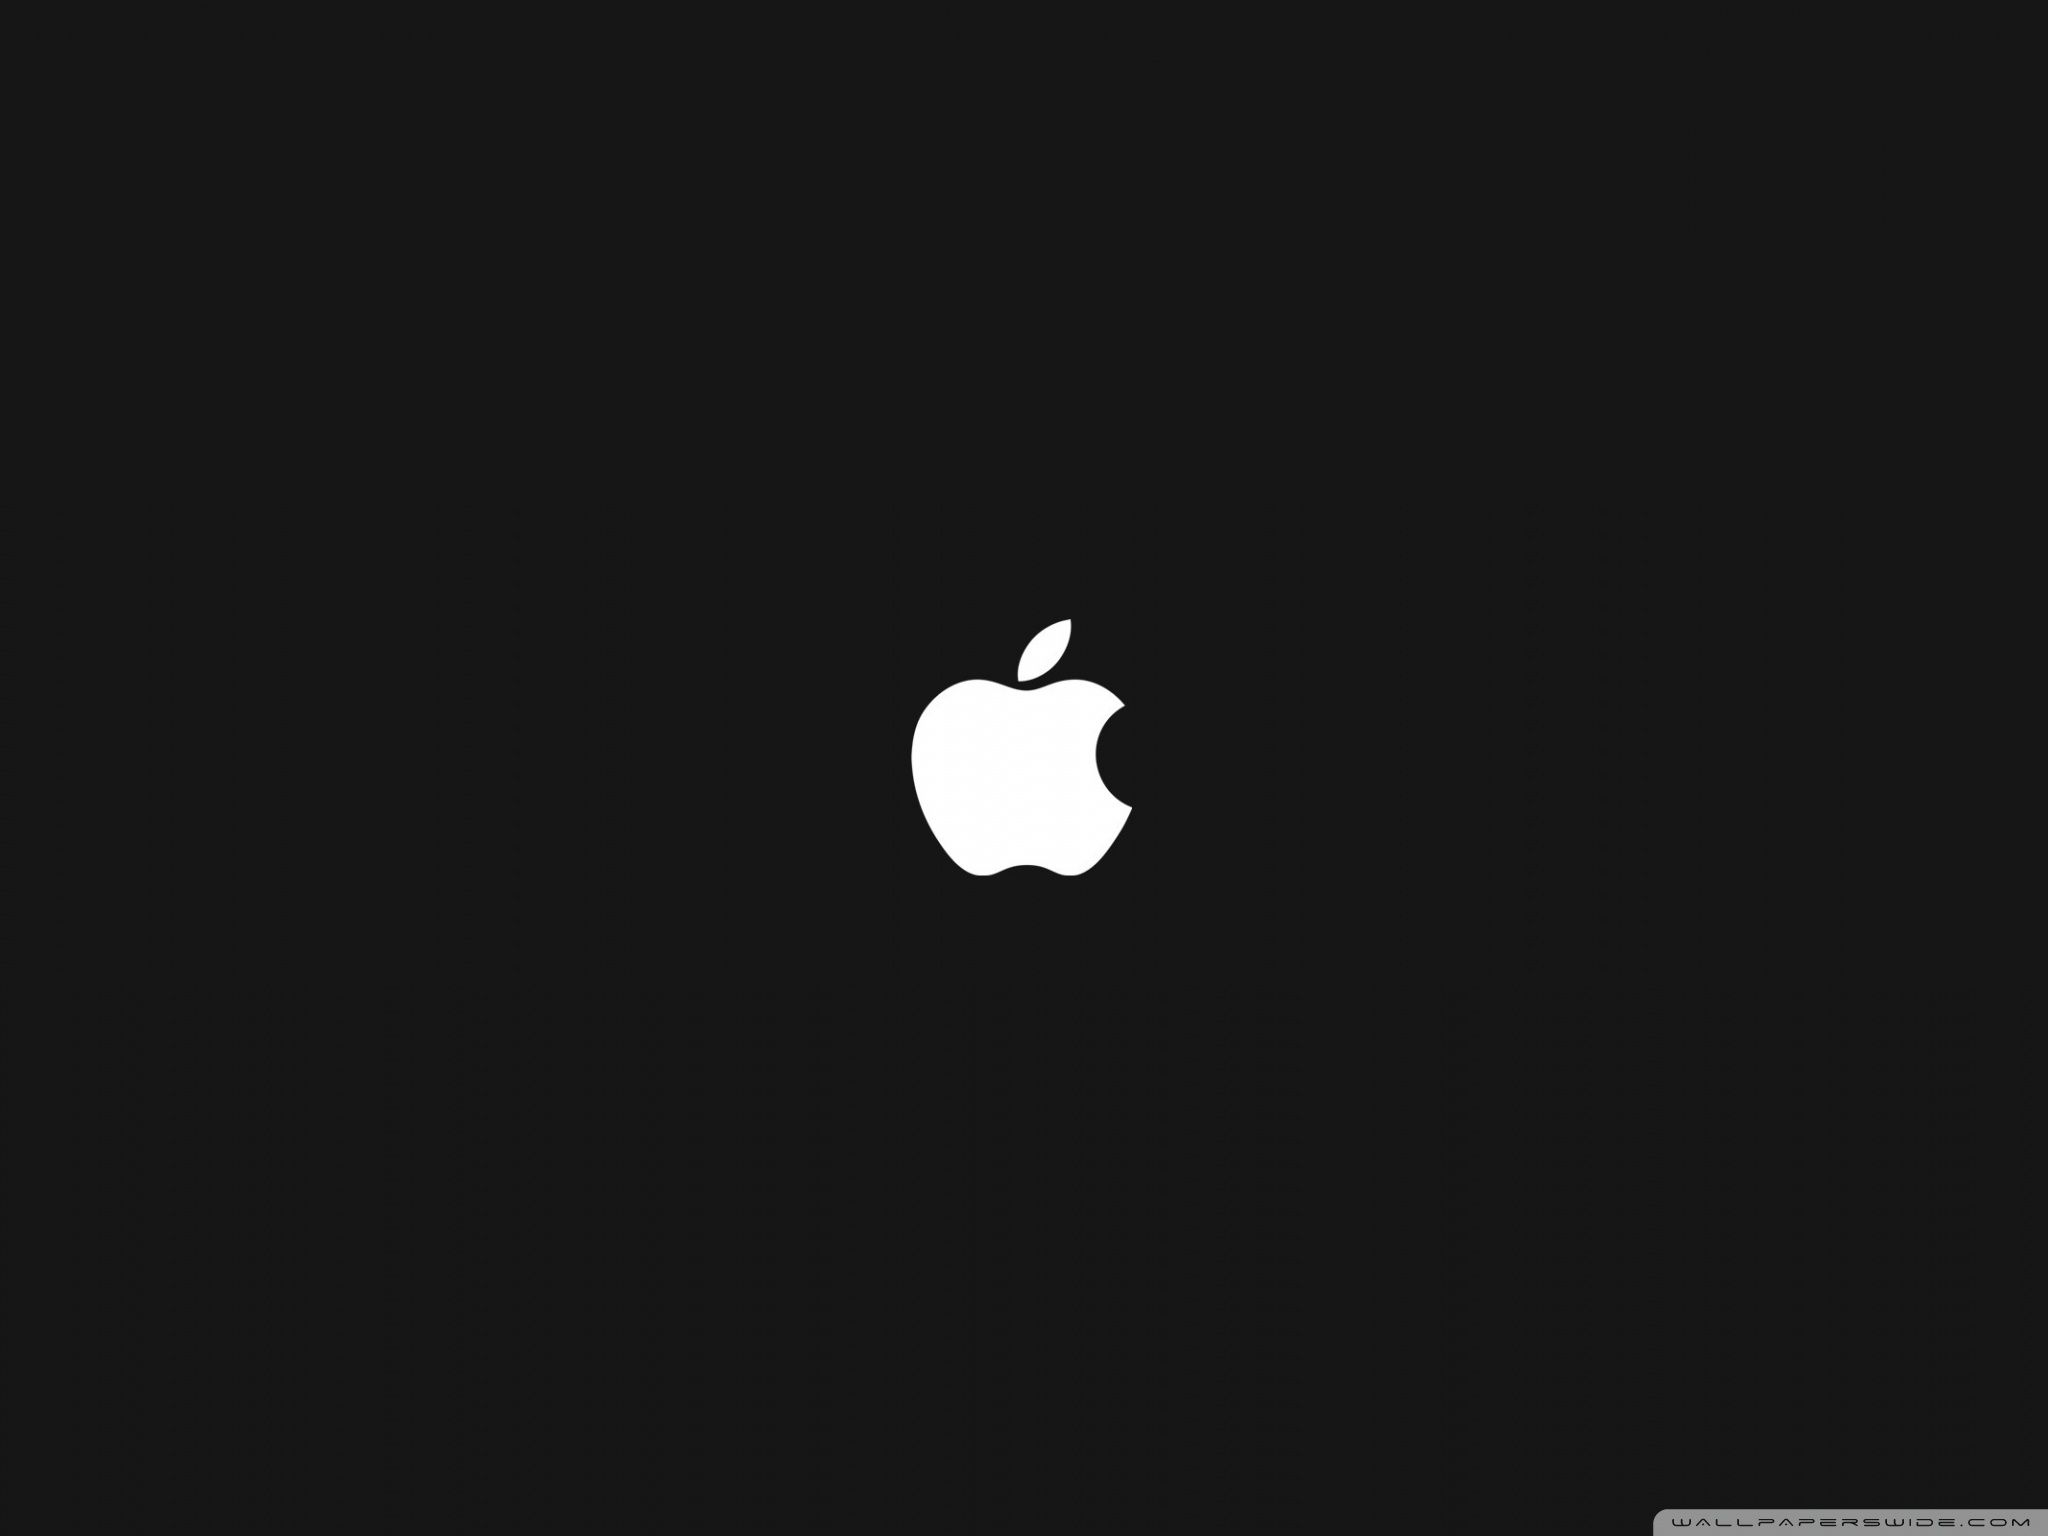 Apple Wallpapers   Top Free Apple Backgrounds   WallpaperAccess